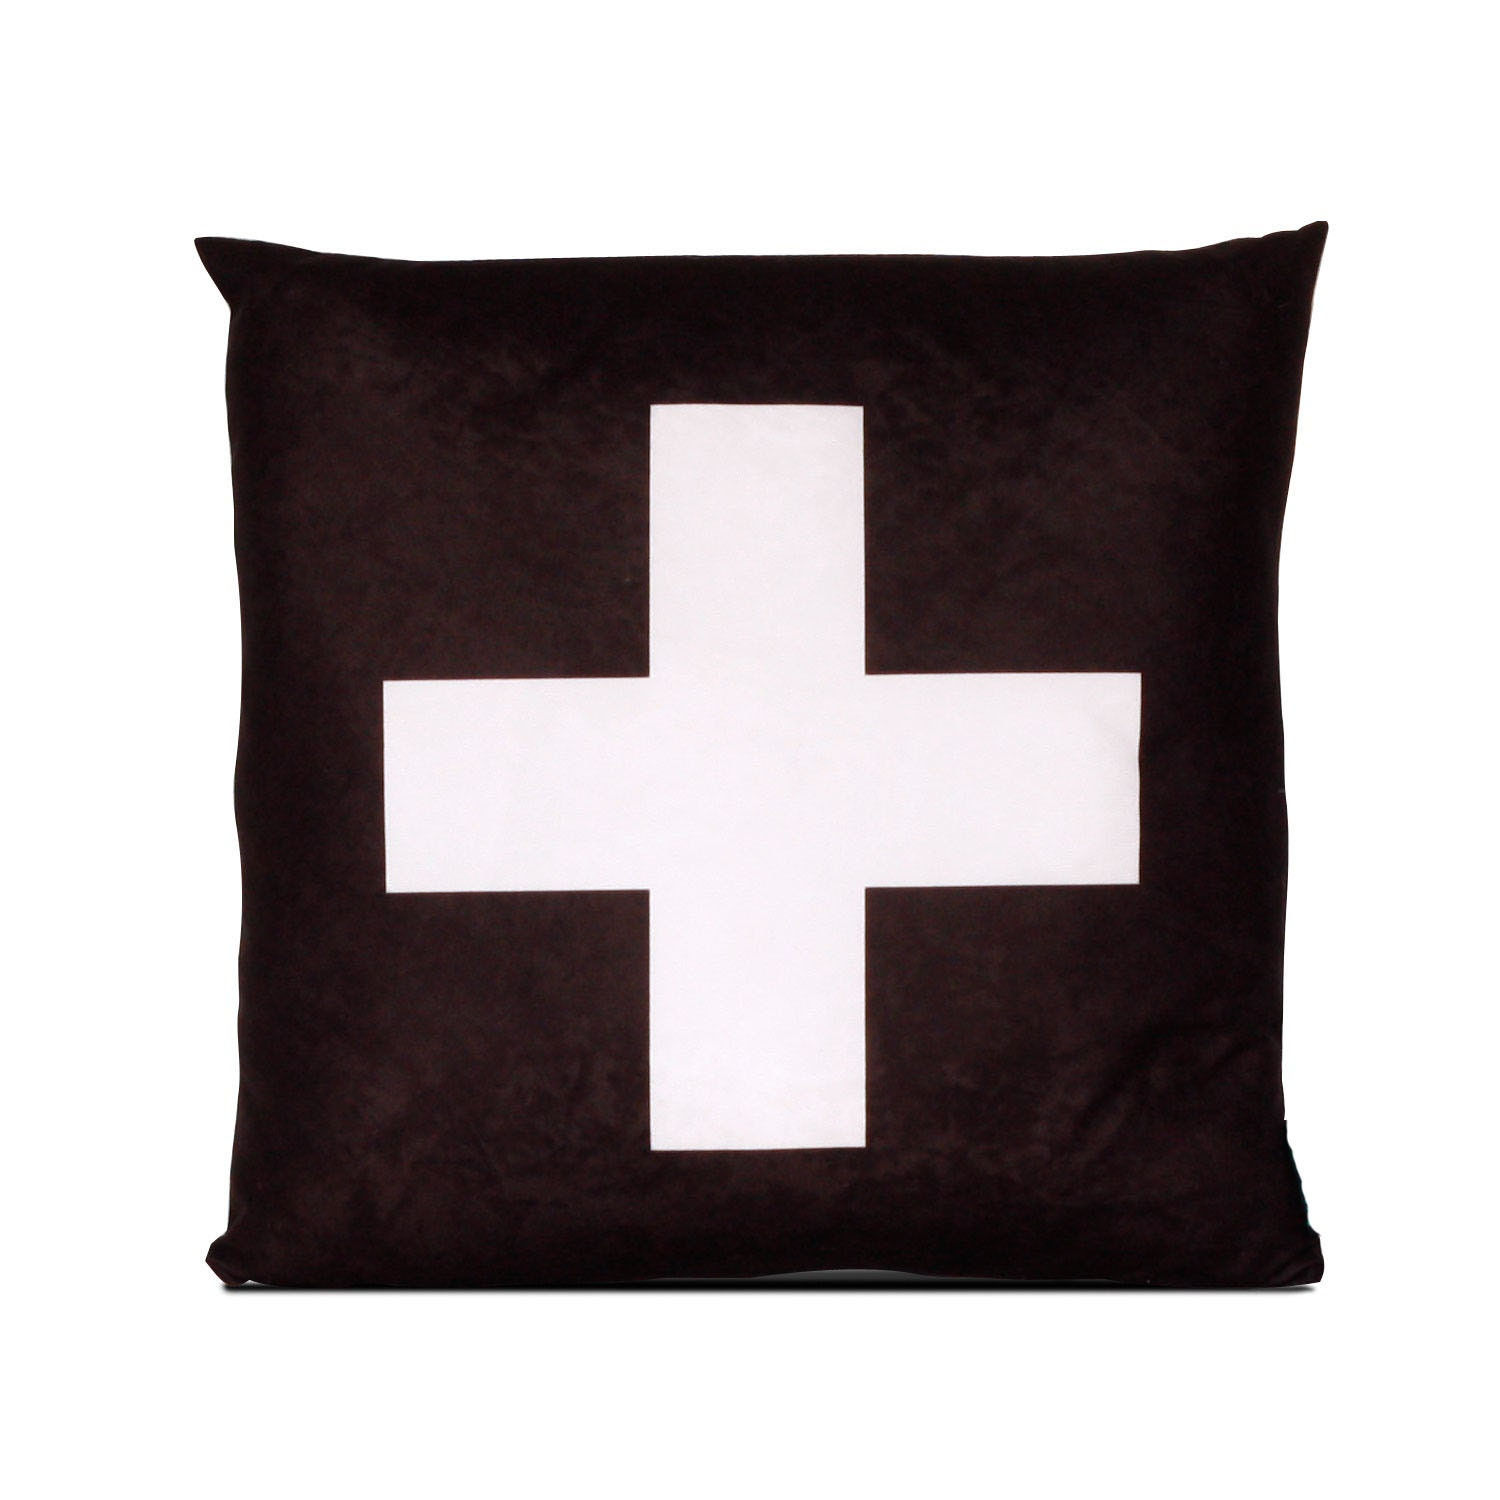 Decorative Pillows With Crosses : Decorative pillow Cross black